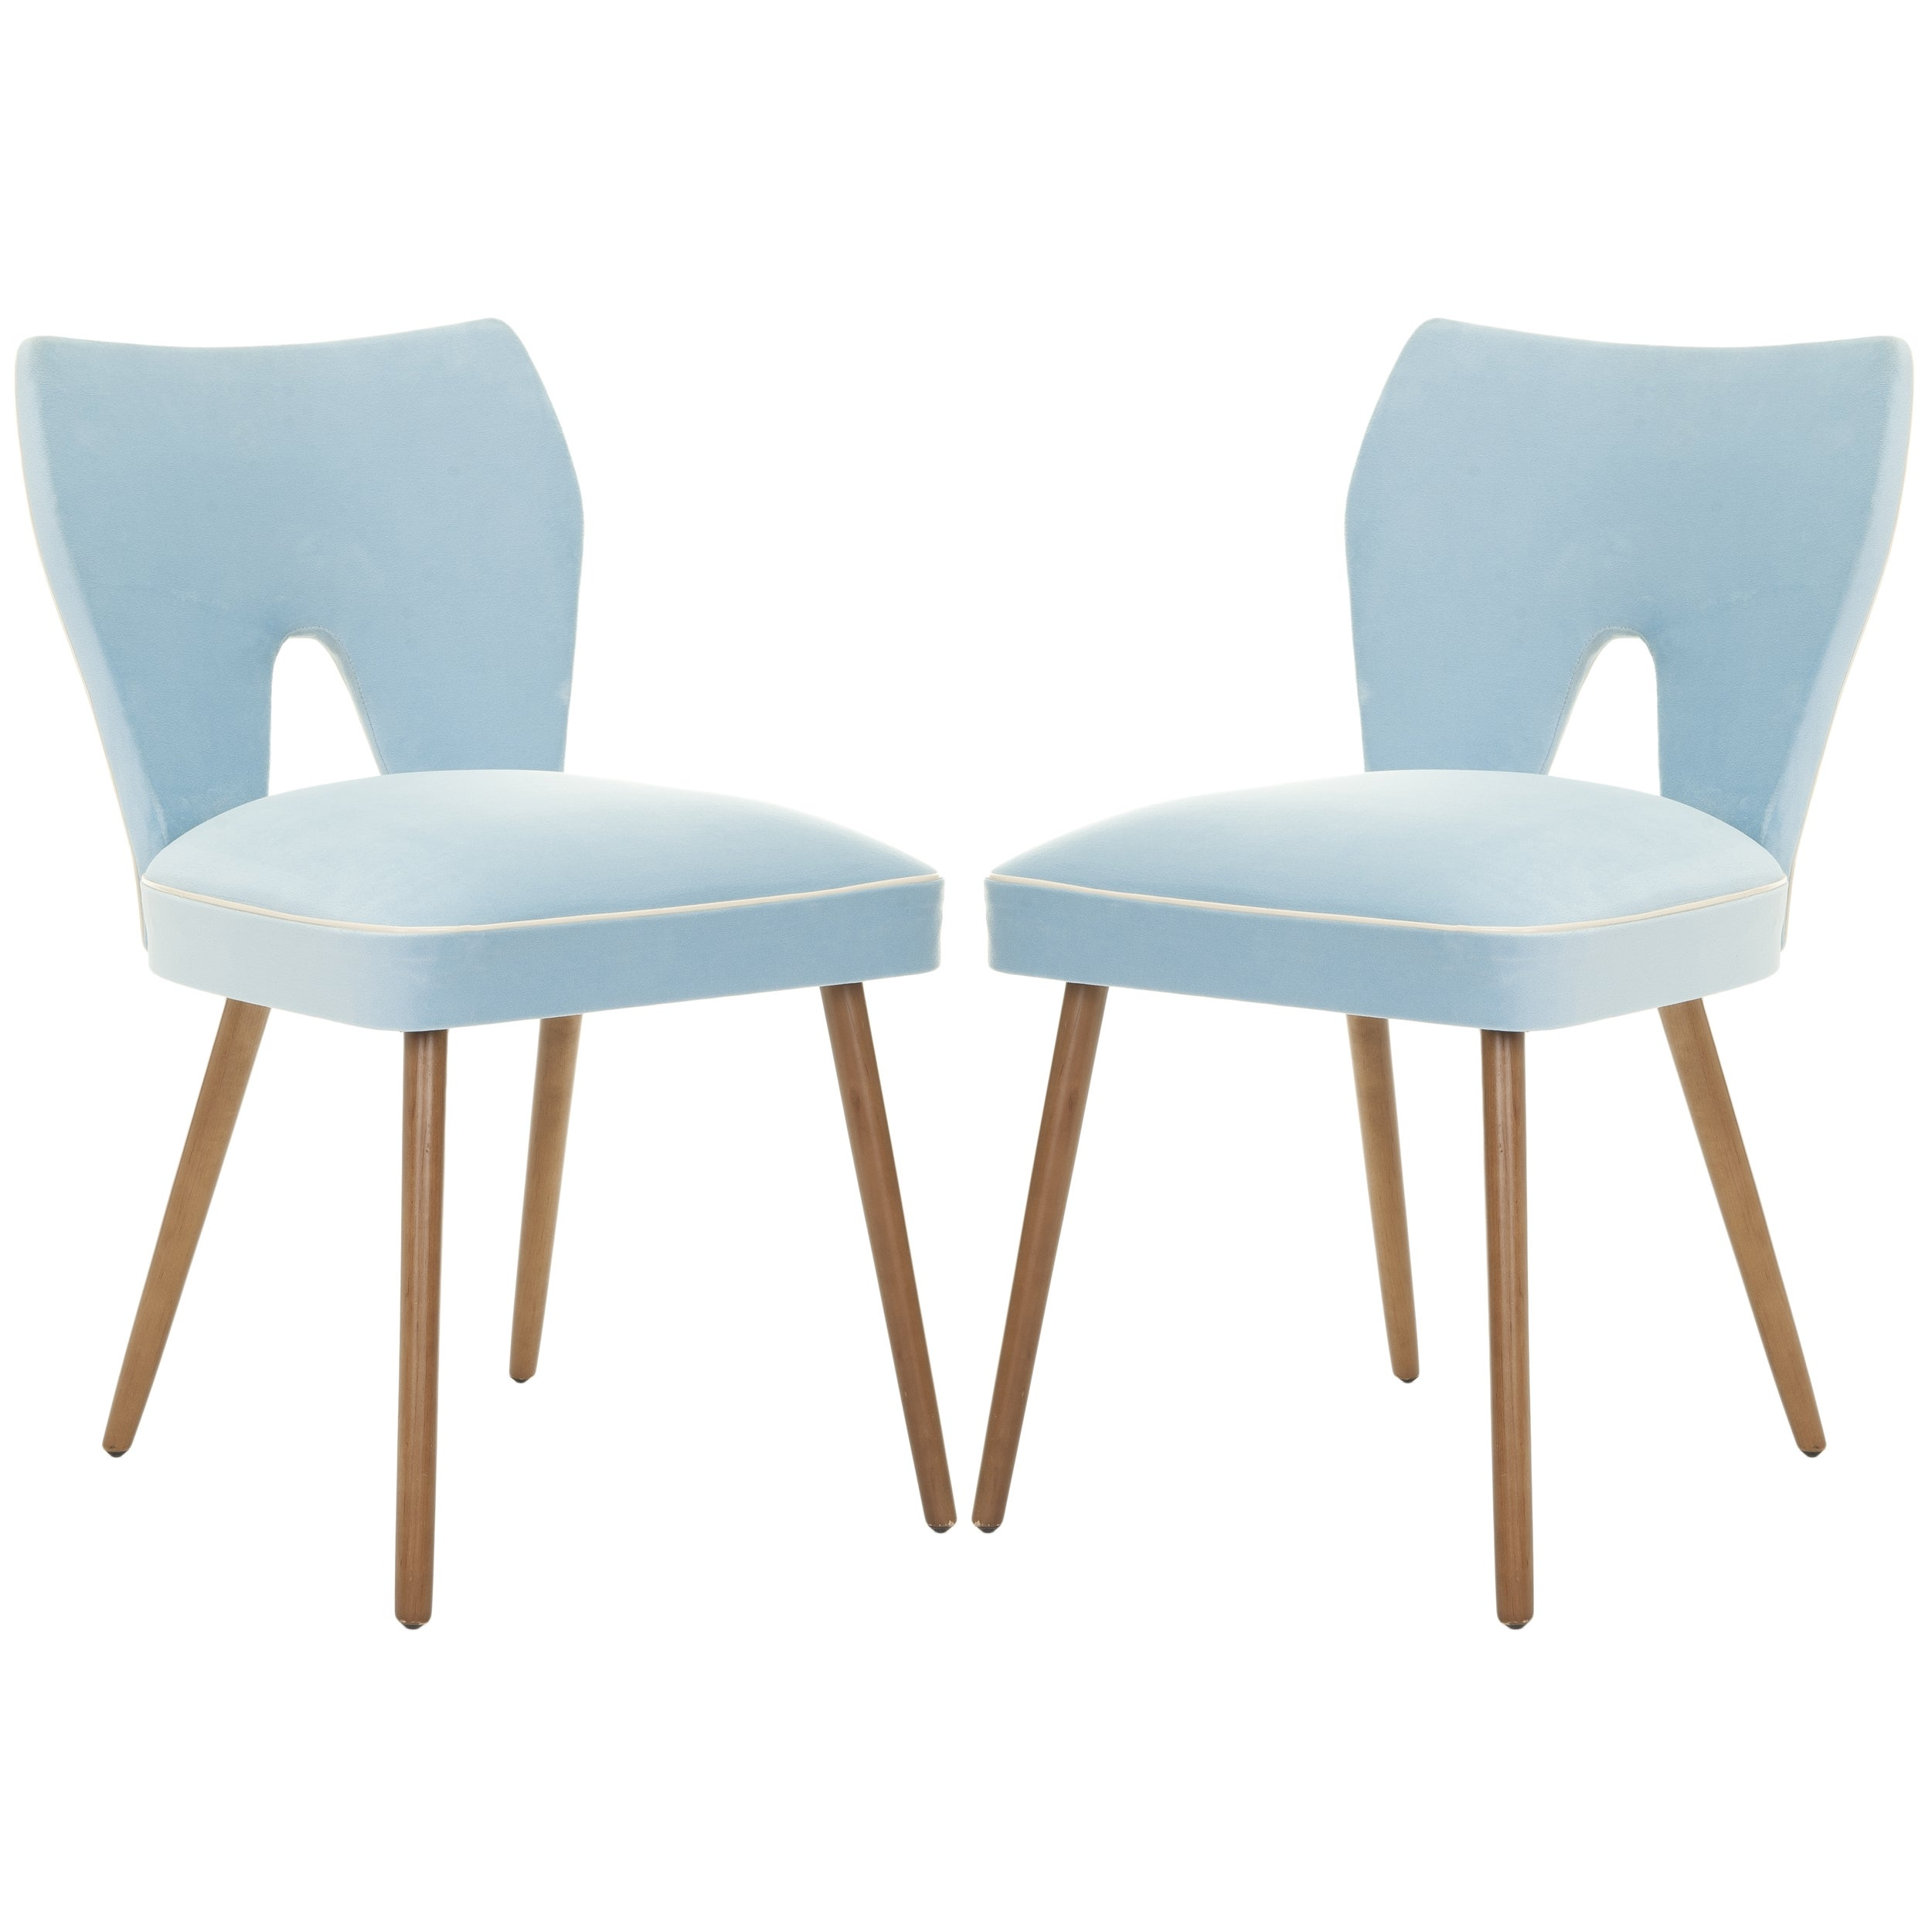 Safavieh Metropolitan Dining Retro Blue Velvet Blend Dining Chairs (Set of 2)